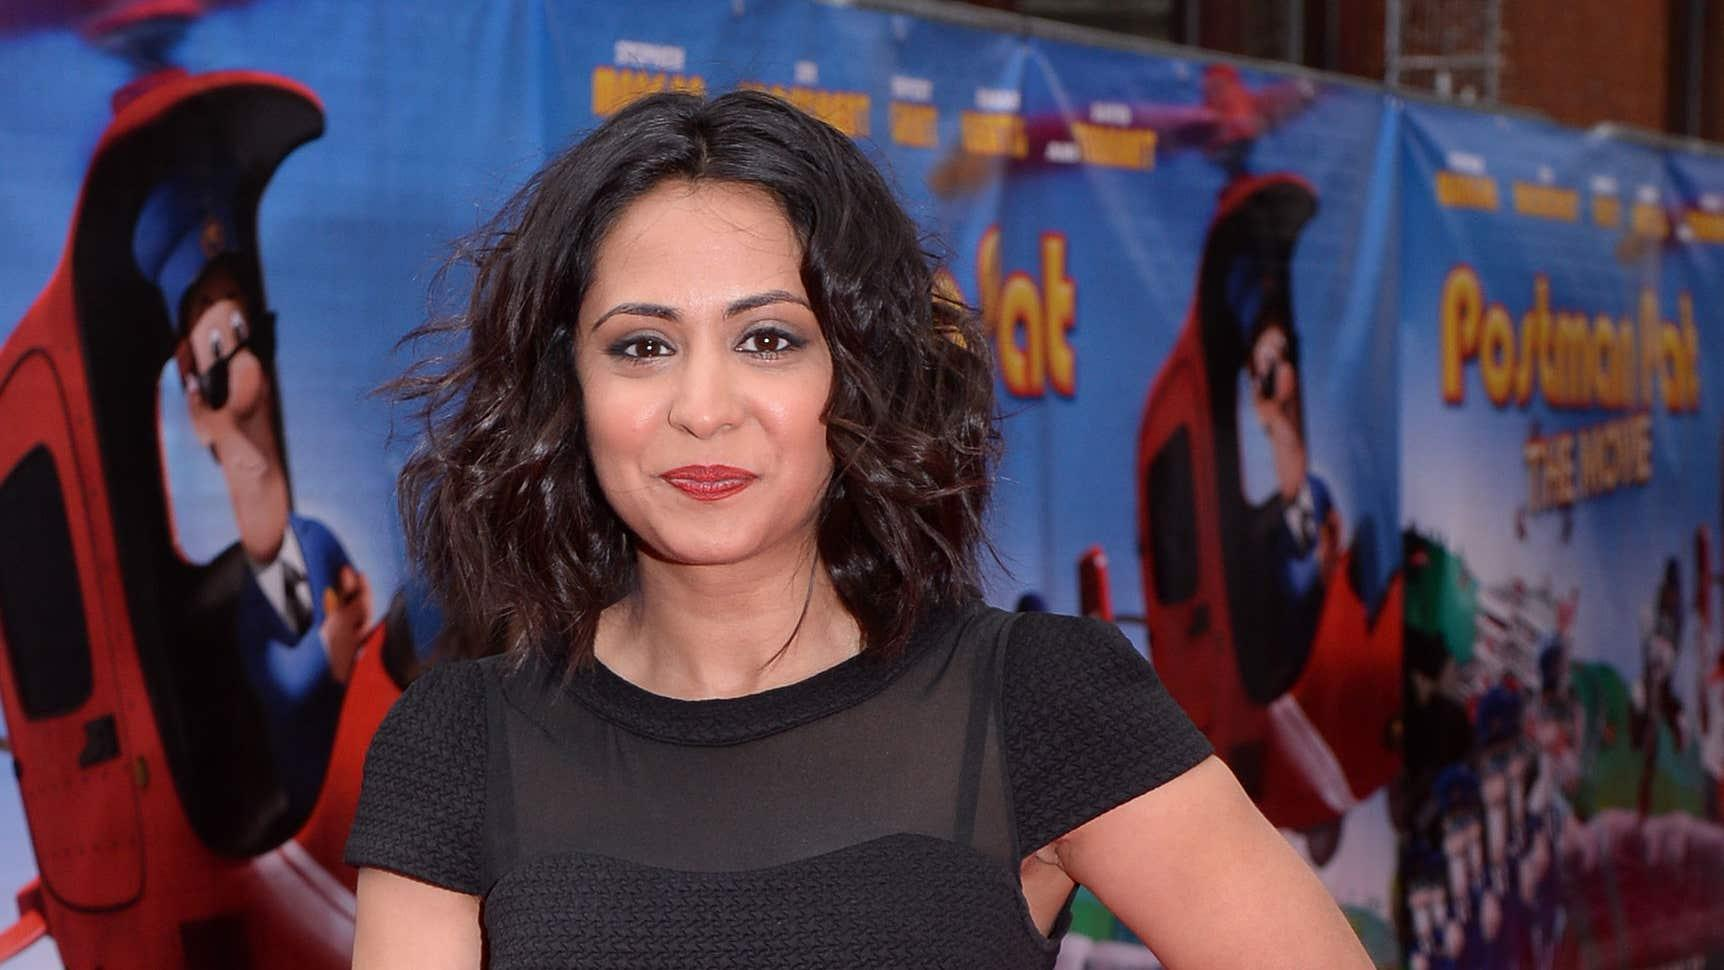 Parminder Nagra says she was turned down for a part over her Indian heritage